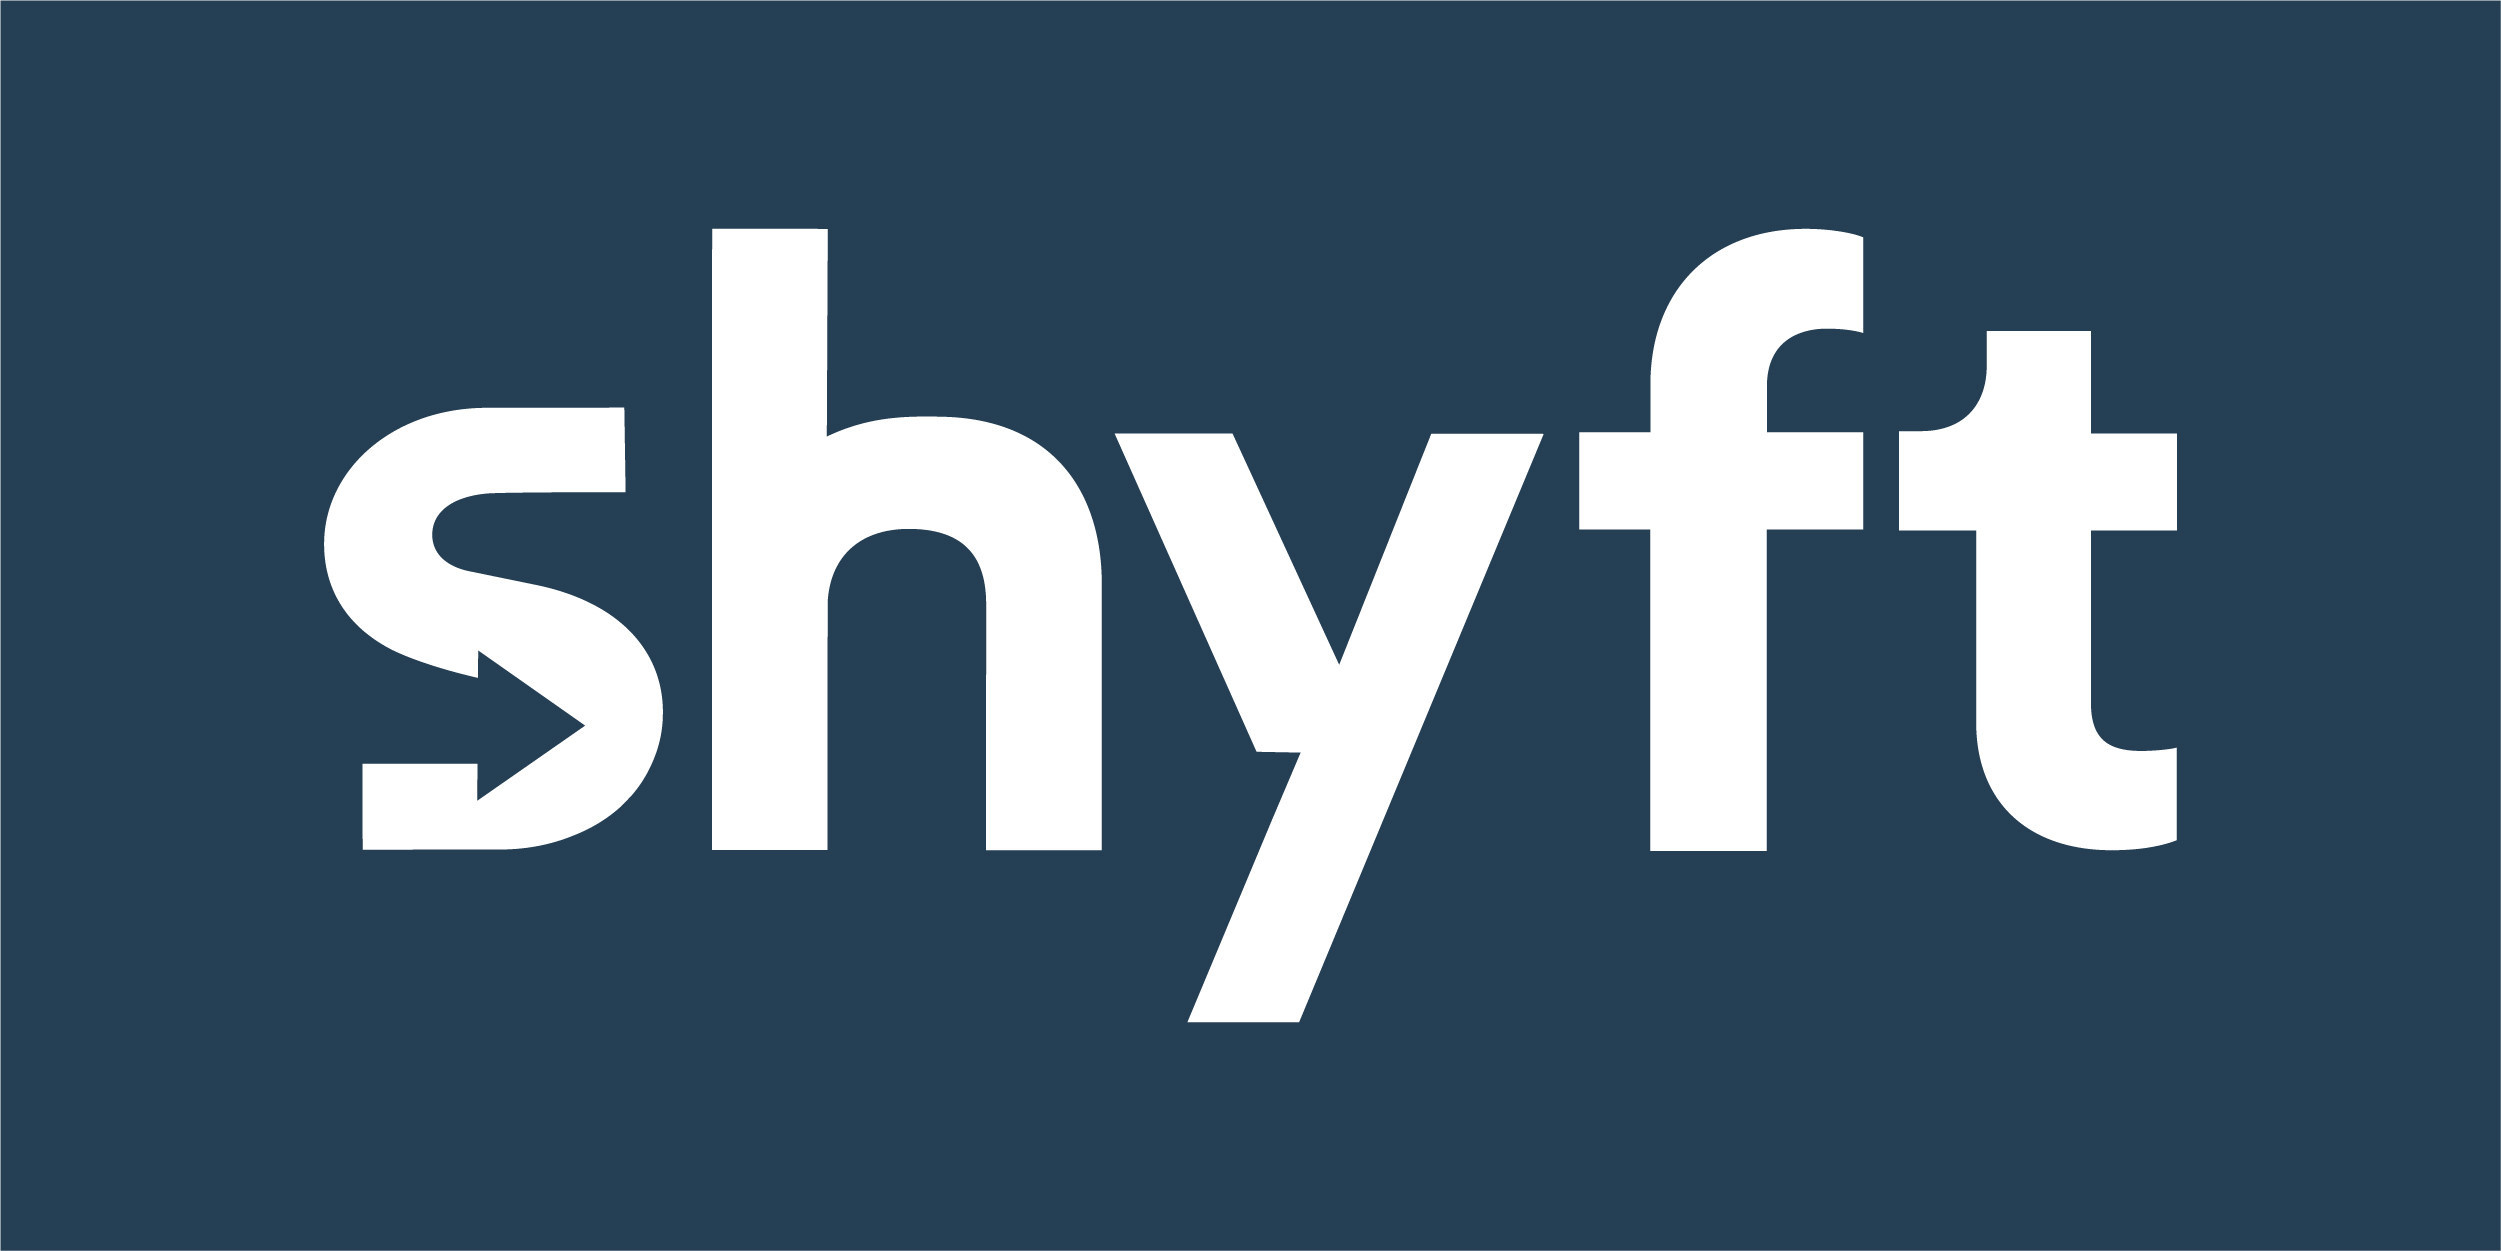 Peggy Smith joins Shyft as Chief Strategy Officer